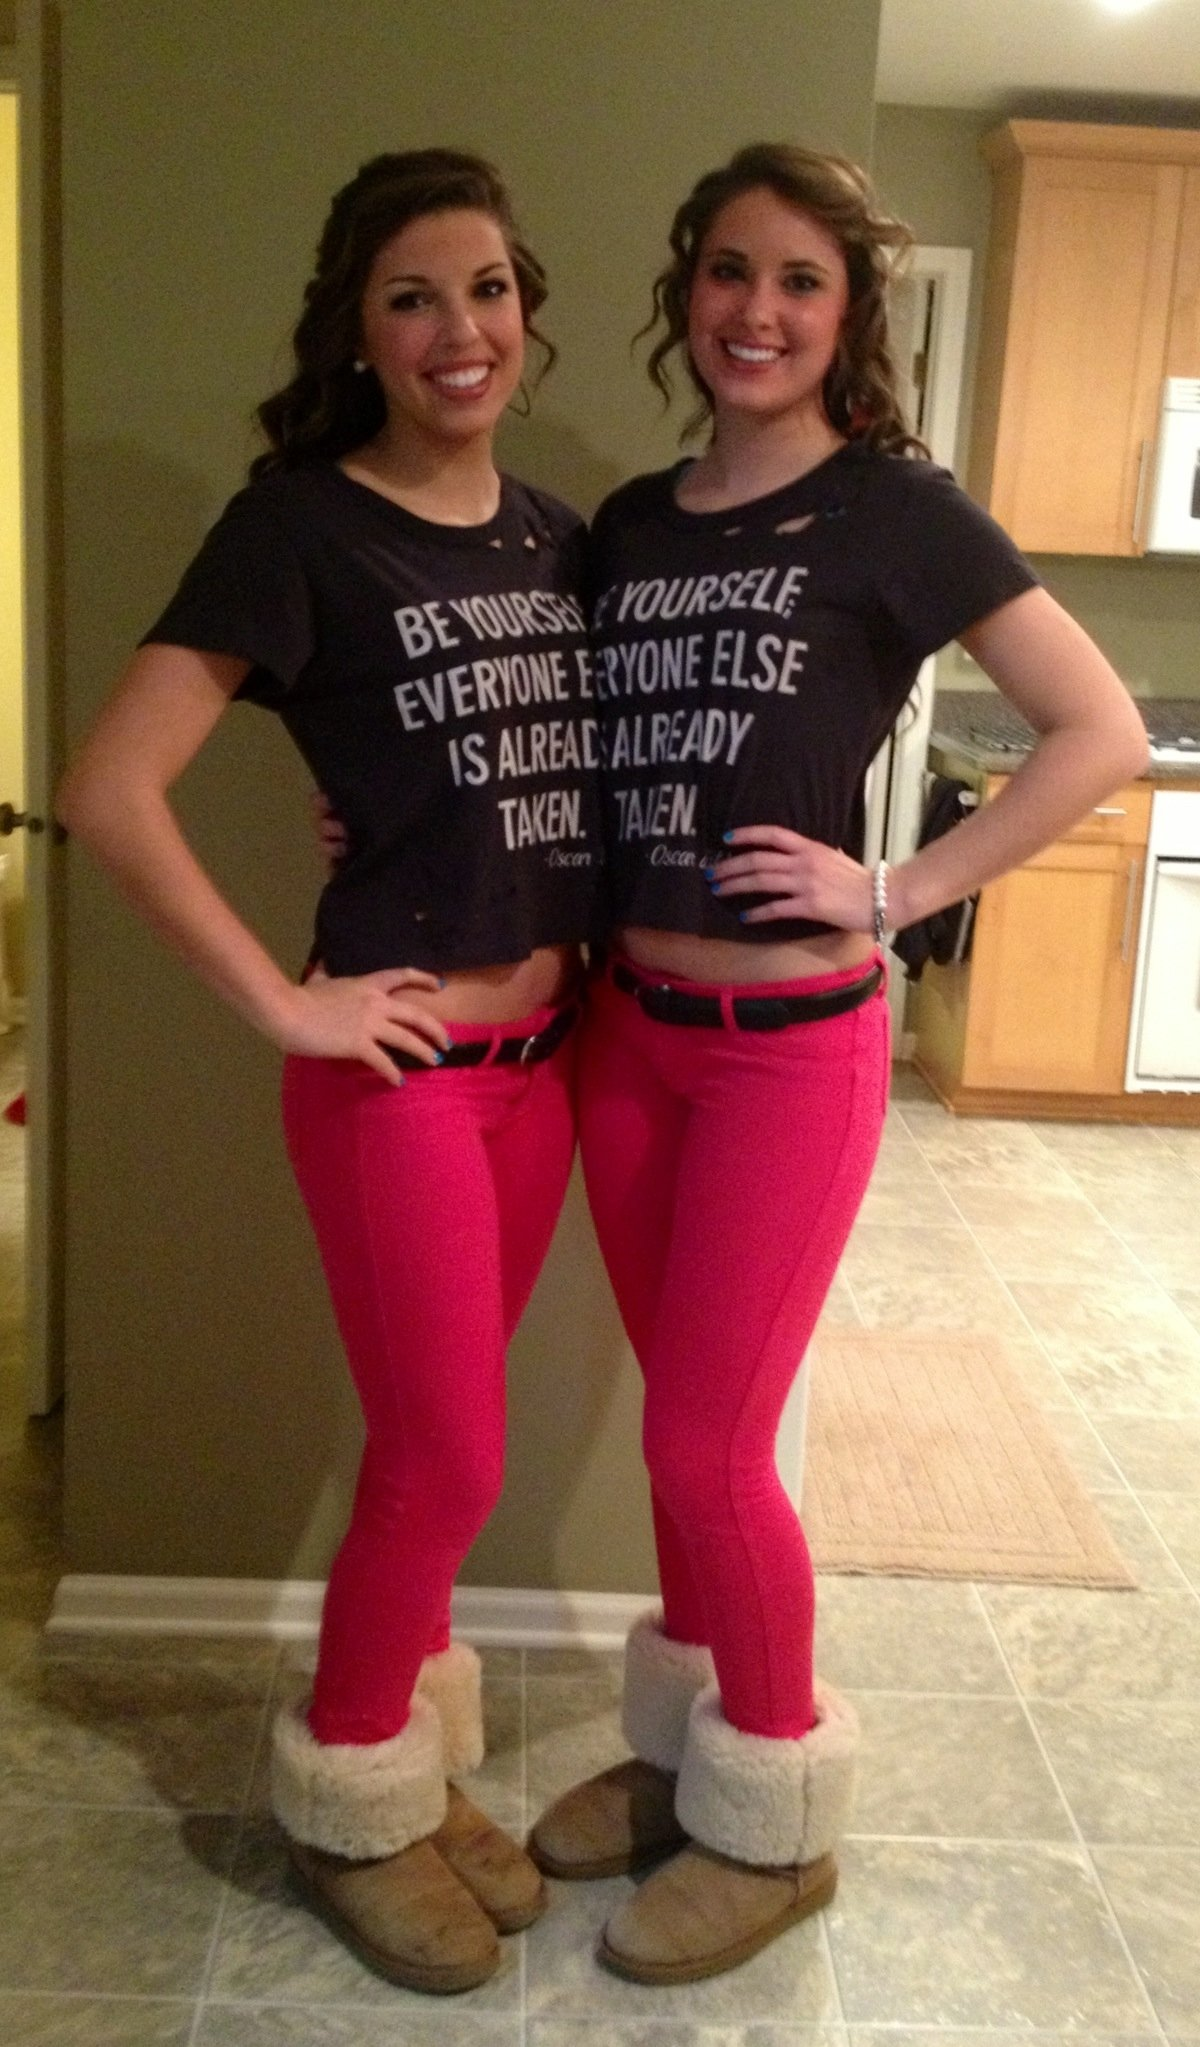 10 Most Recommended Cool Funny Halloween Costume Ideas best friend twins 3 funny halloween costumes funny stuff 8 2020